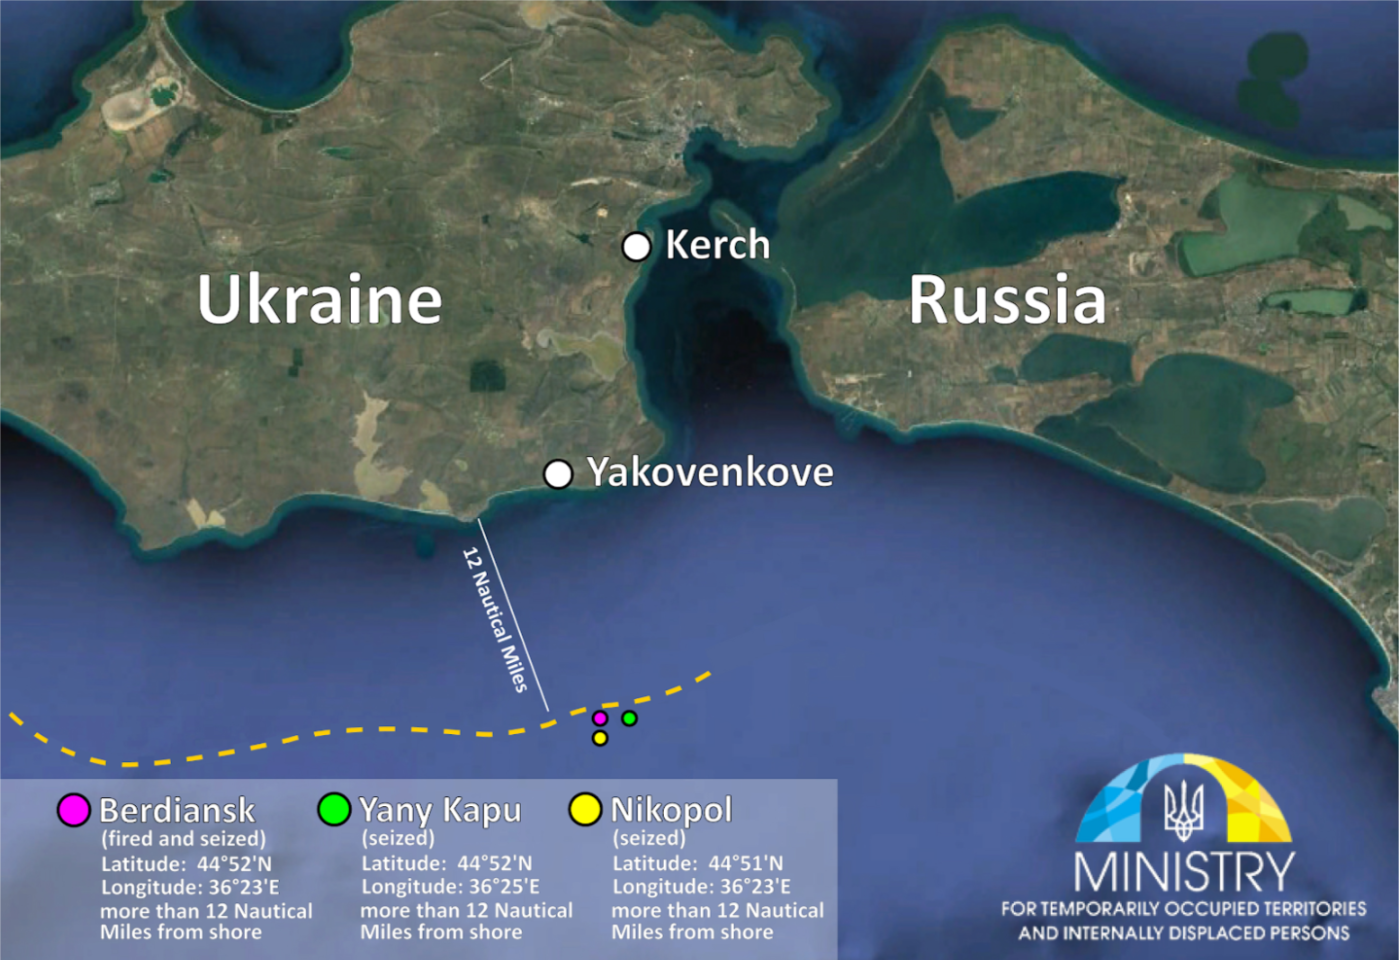 Image 9: Ukrainian release showing the locations of the capture of the three ships.